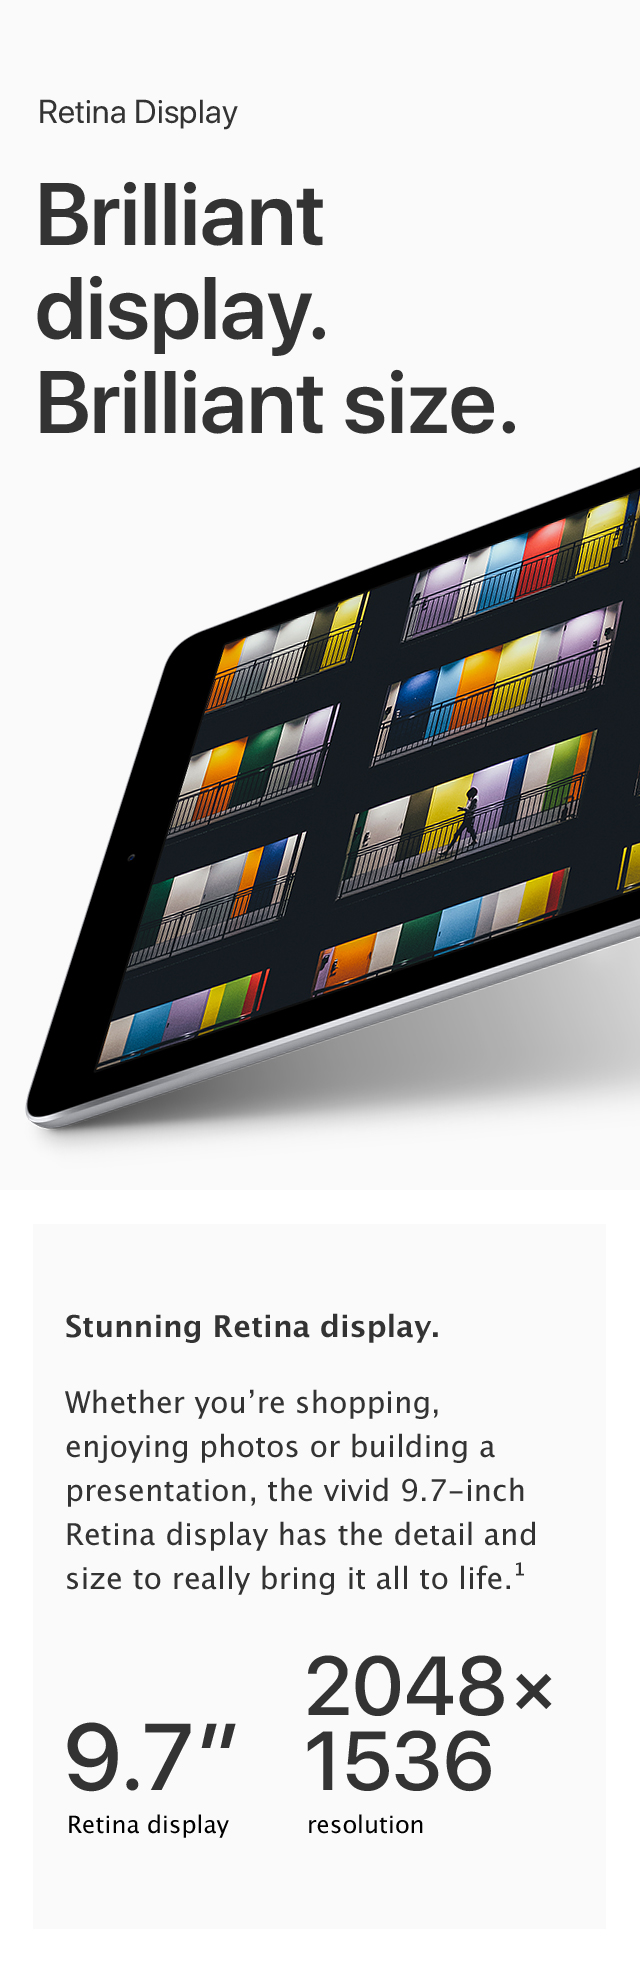 iPad - Brilliant display. Brilliant size.